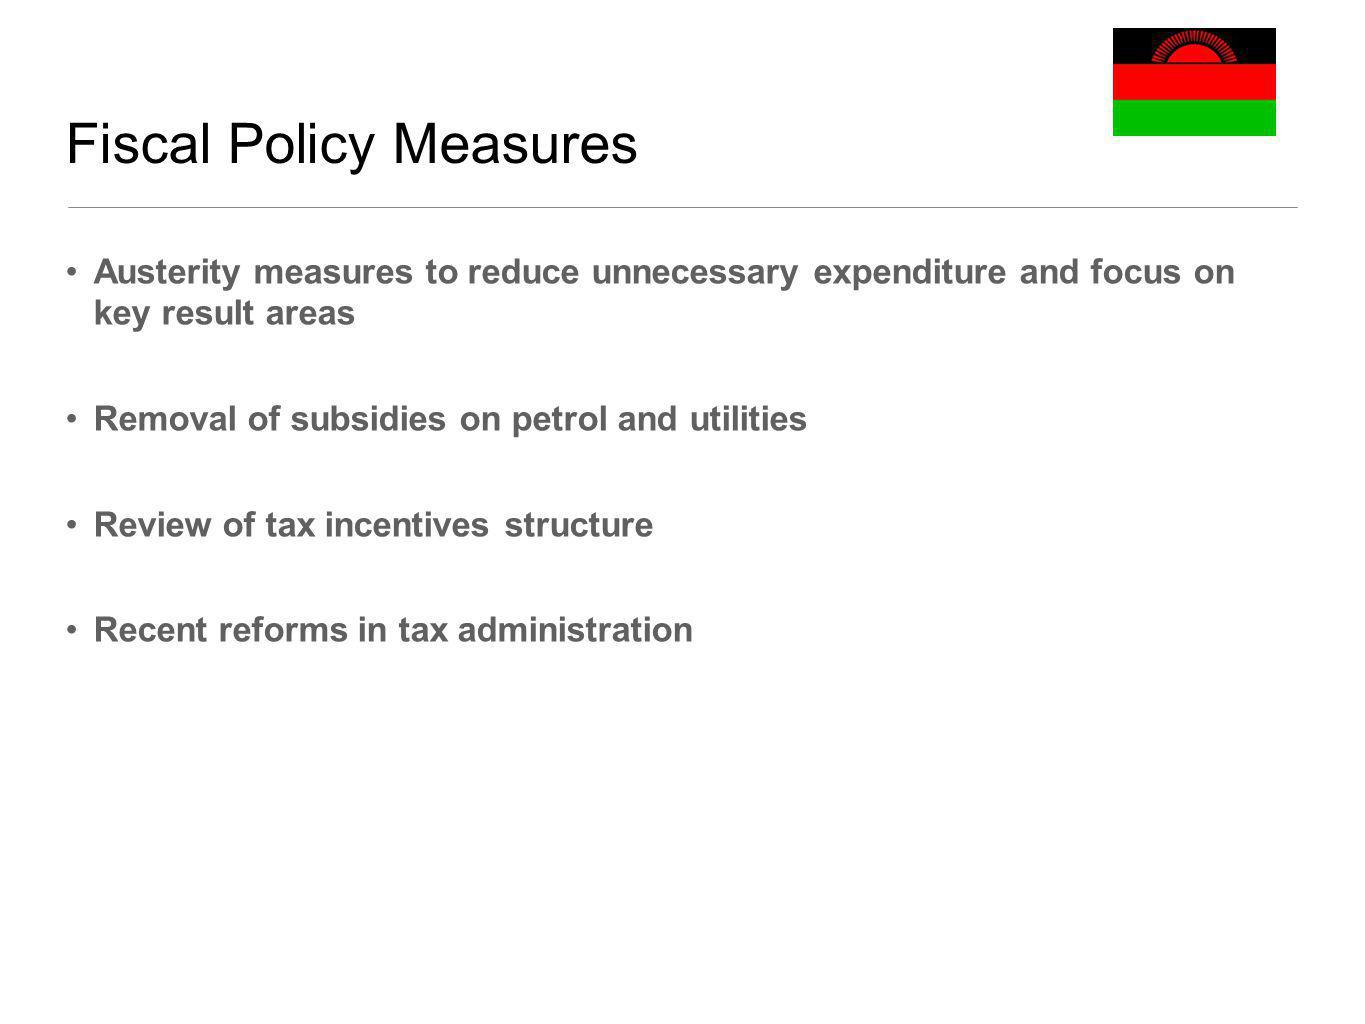 Fiscal Policy Measures Austerity measures to reduce unnecessary expenditure and focus on key result areas Removal of subsidies on petrol and utilities Review of tax incentives structure Recent reforms in tax administration